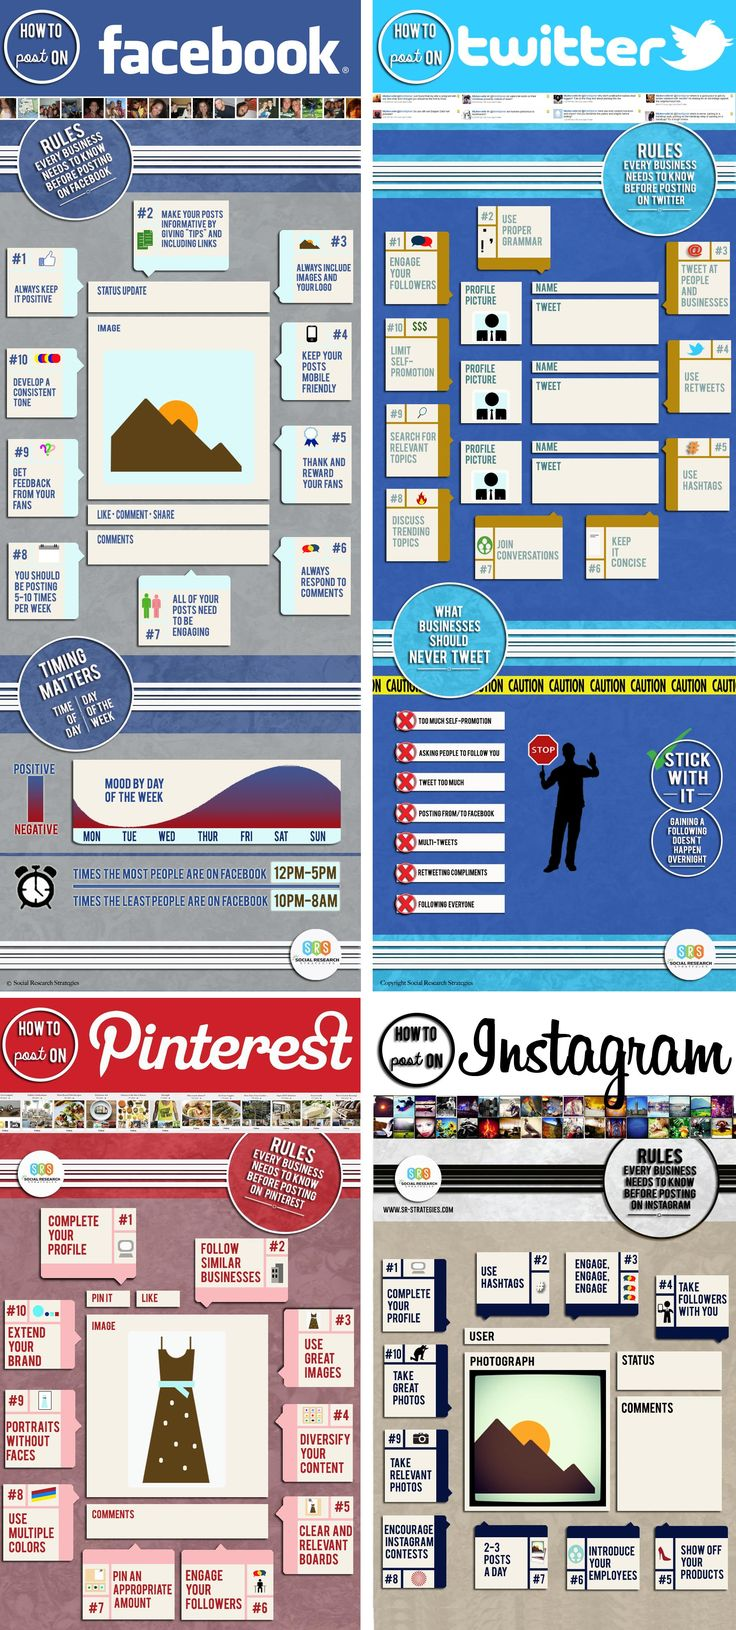 10 Rules That Every Business Needs To Know Before They Post On #Facebook, #Twitter, #Pinterest and #Instagram - #infographics #socialmedia